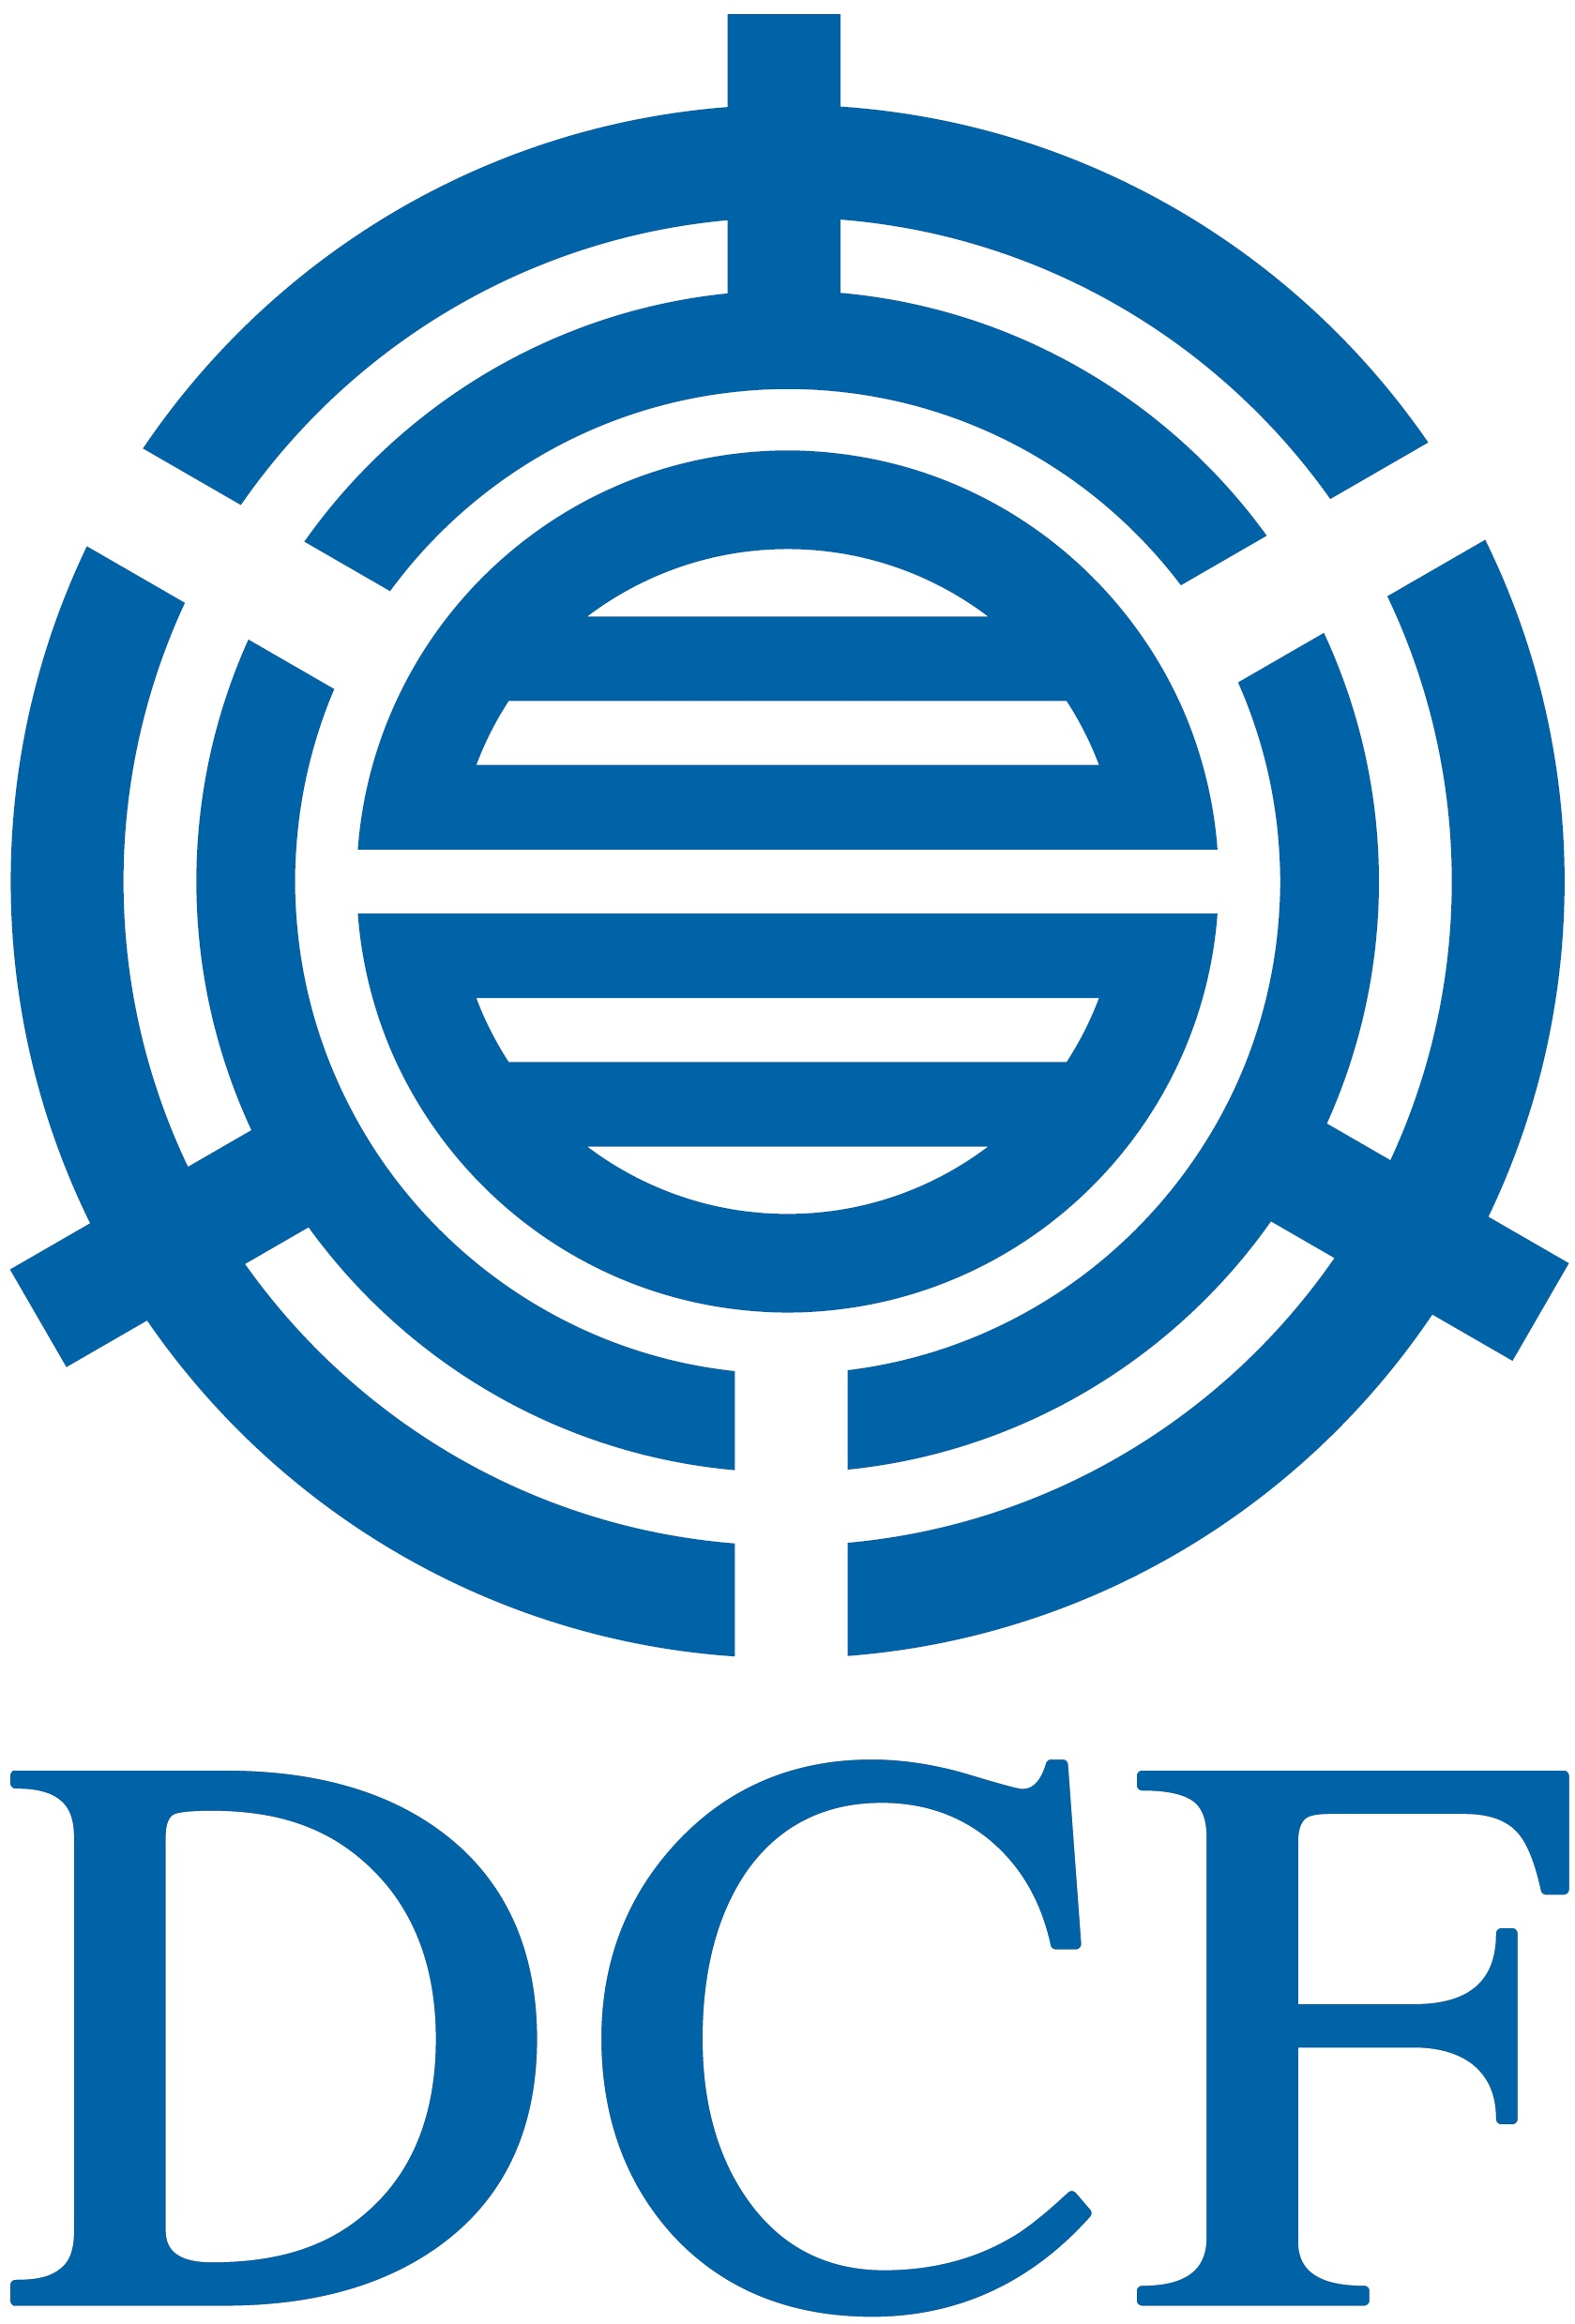 Daechang Forging Co., Ltd.